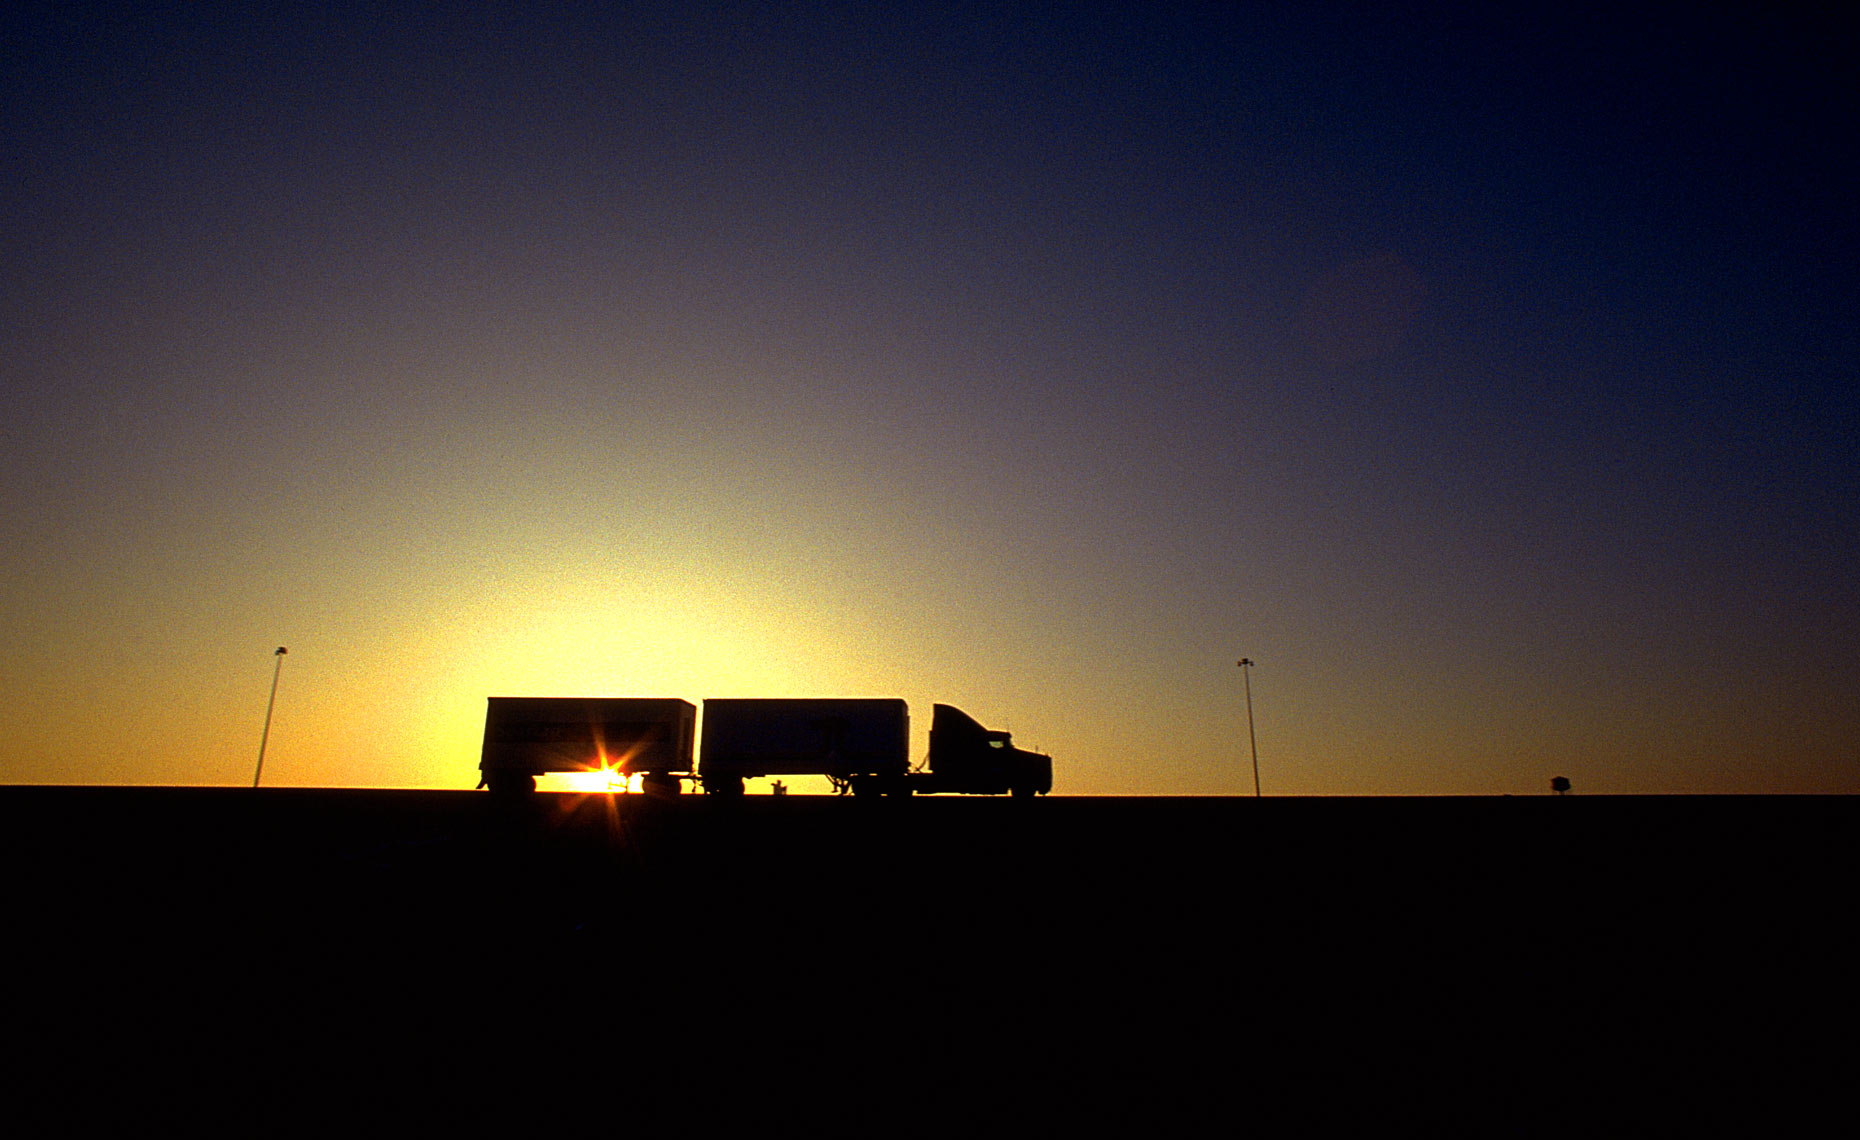 Semi-trucks-sunset-sky-1